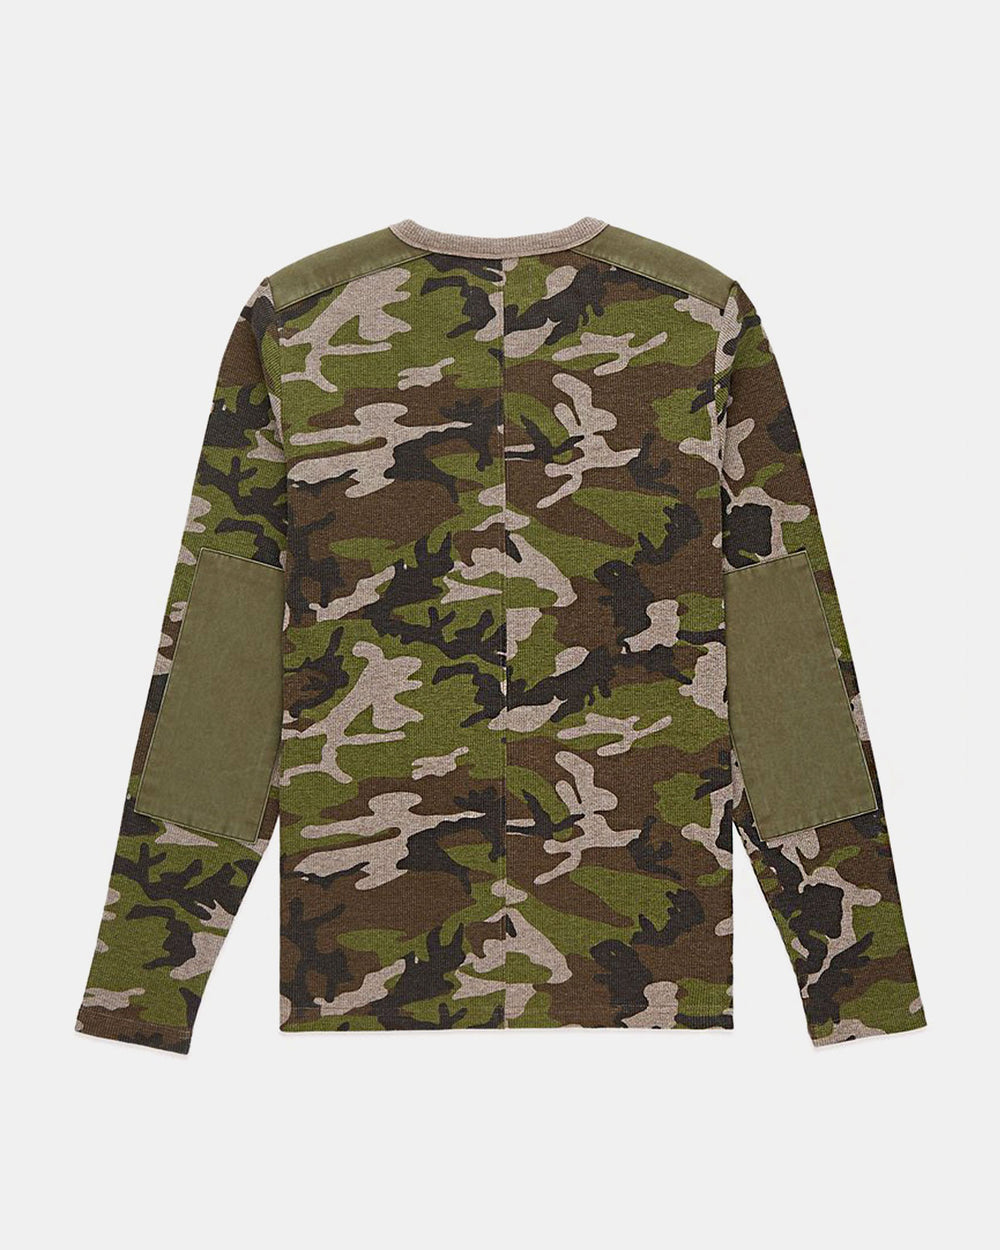 Ovadia & Sons - Waffle Long Sleeve Thermal Tee (Camo)